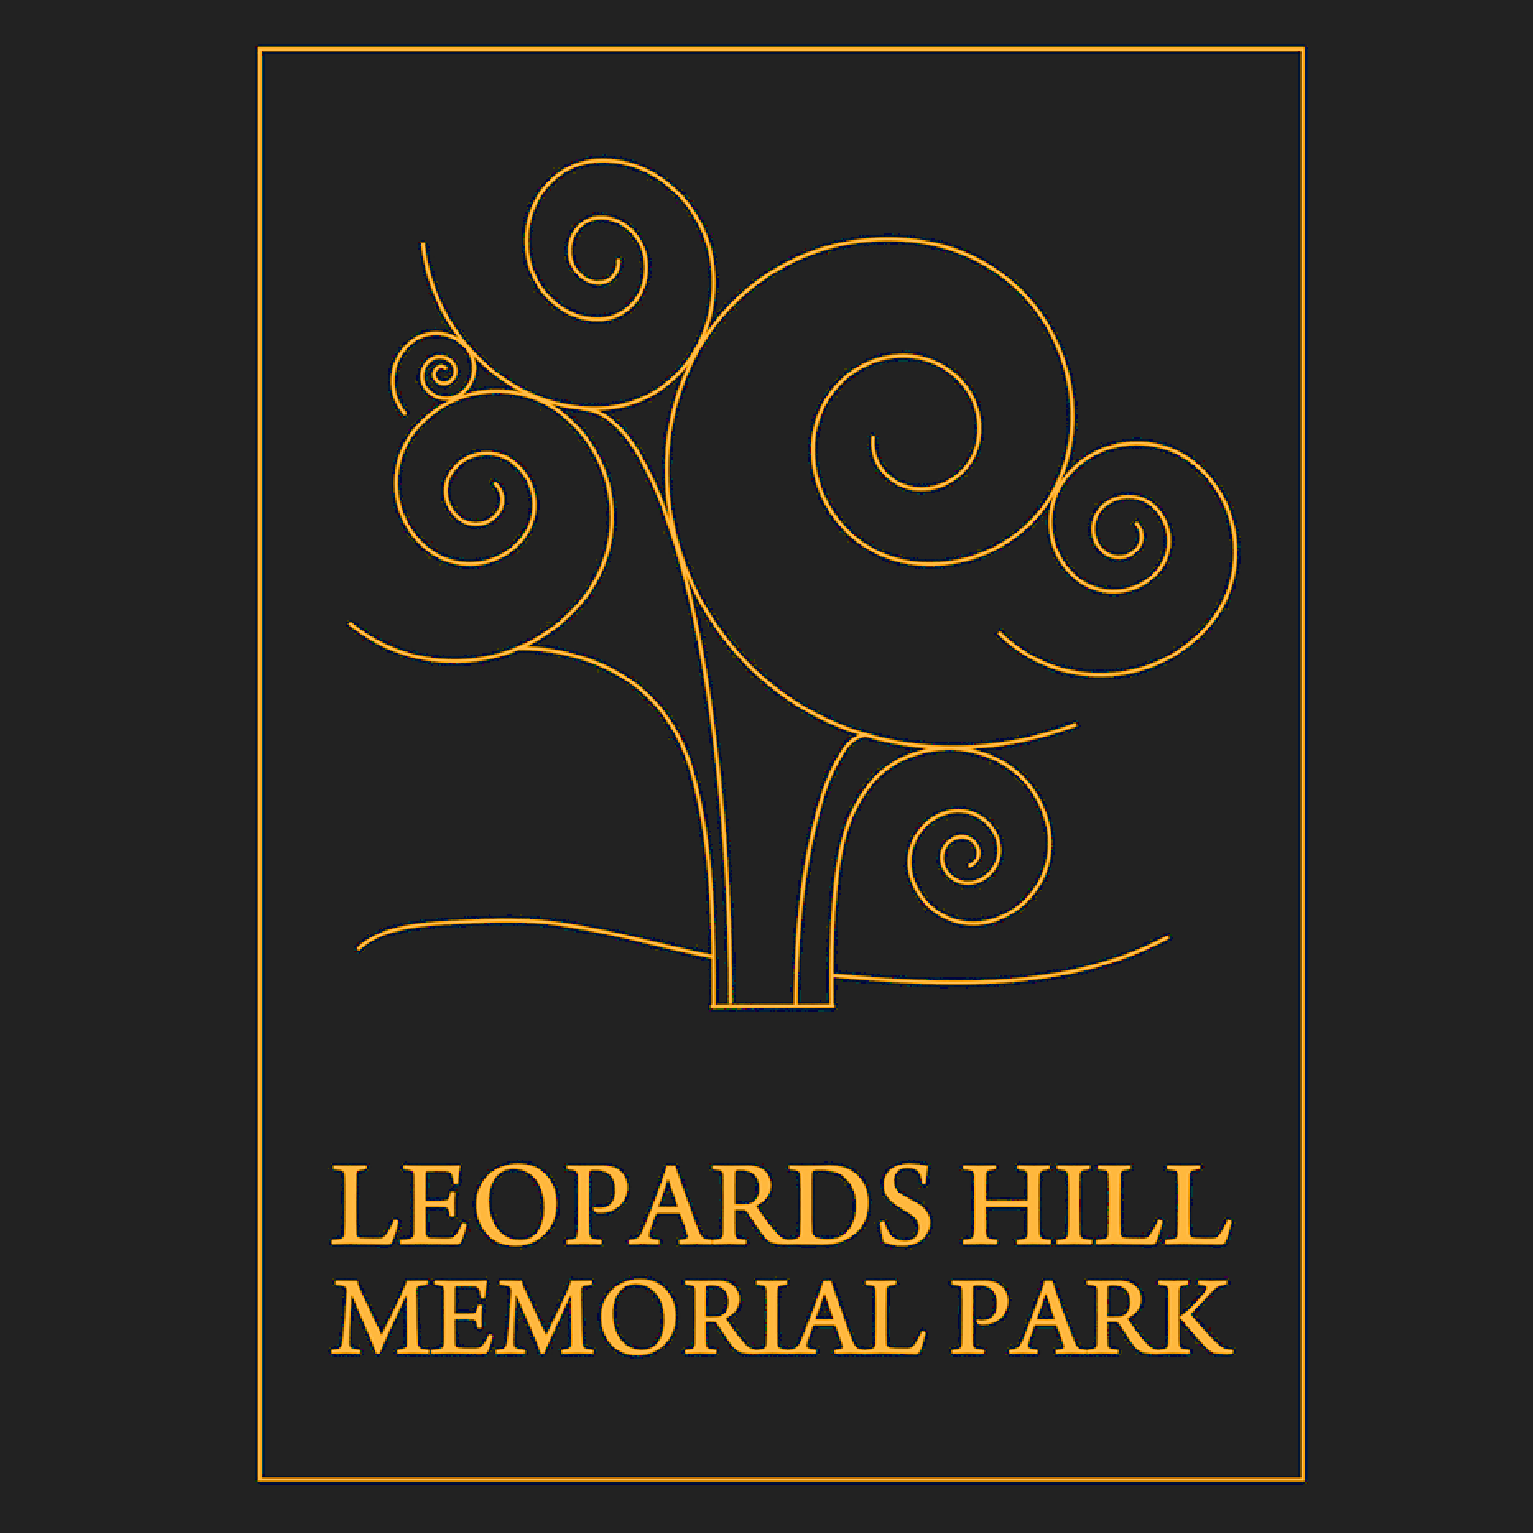 Leopards Hill Memorials Park